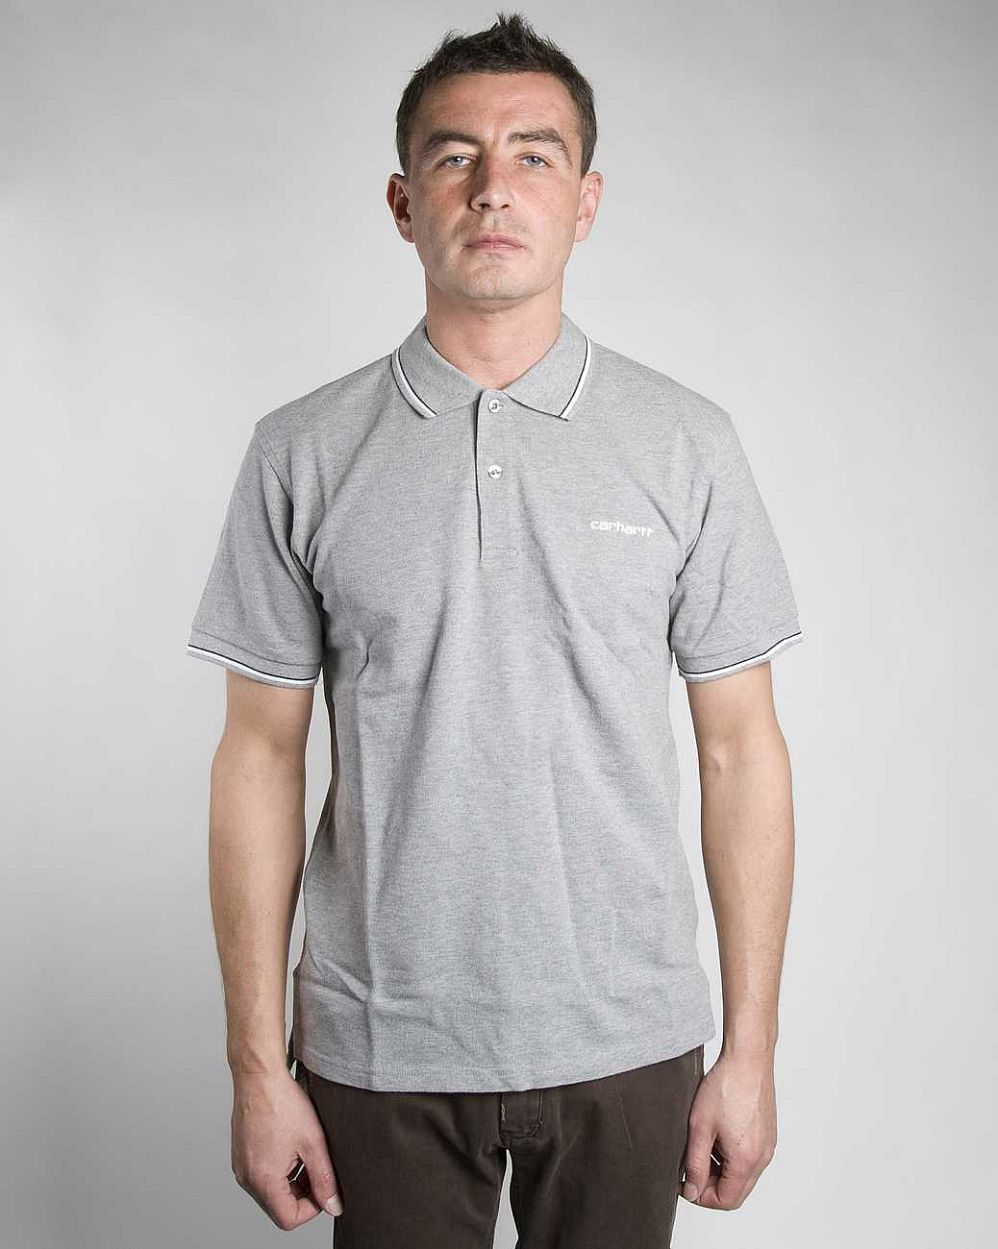 Поло Carhartt S/S Caddie Polo Grey Heather white отзывы